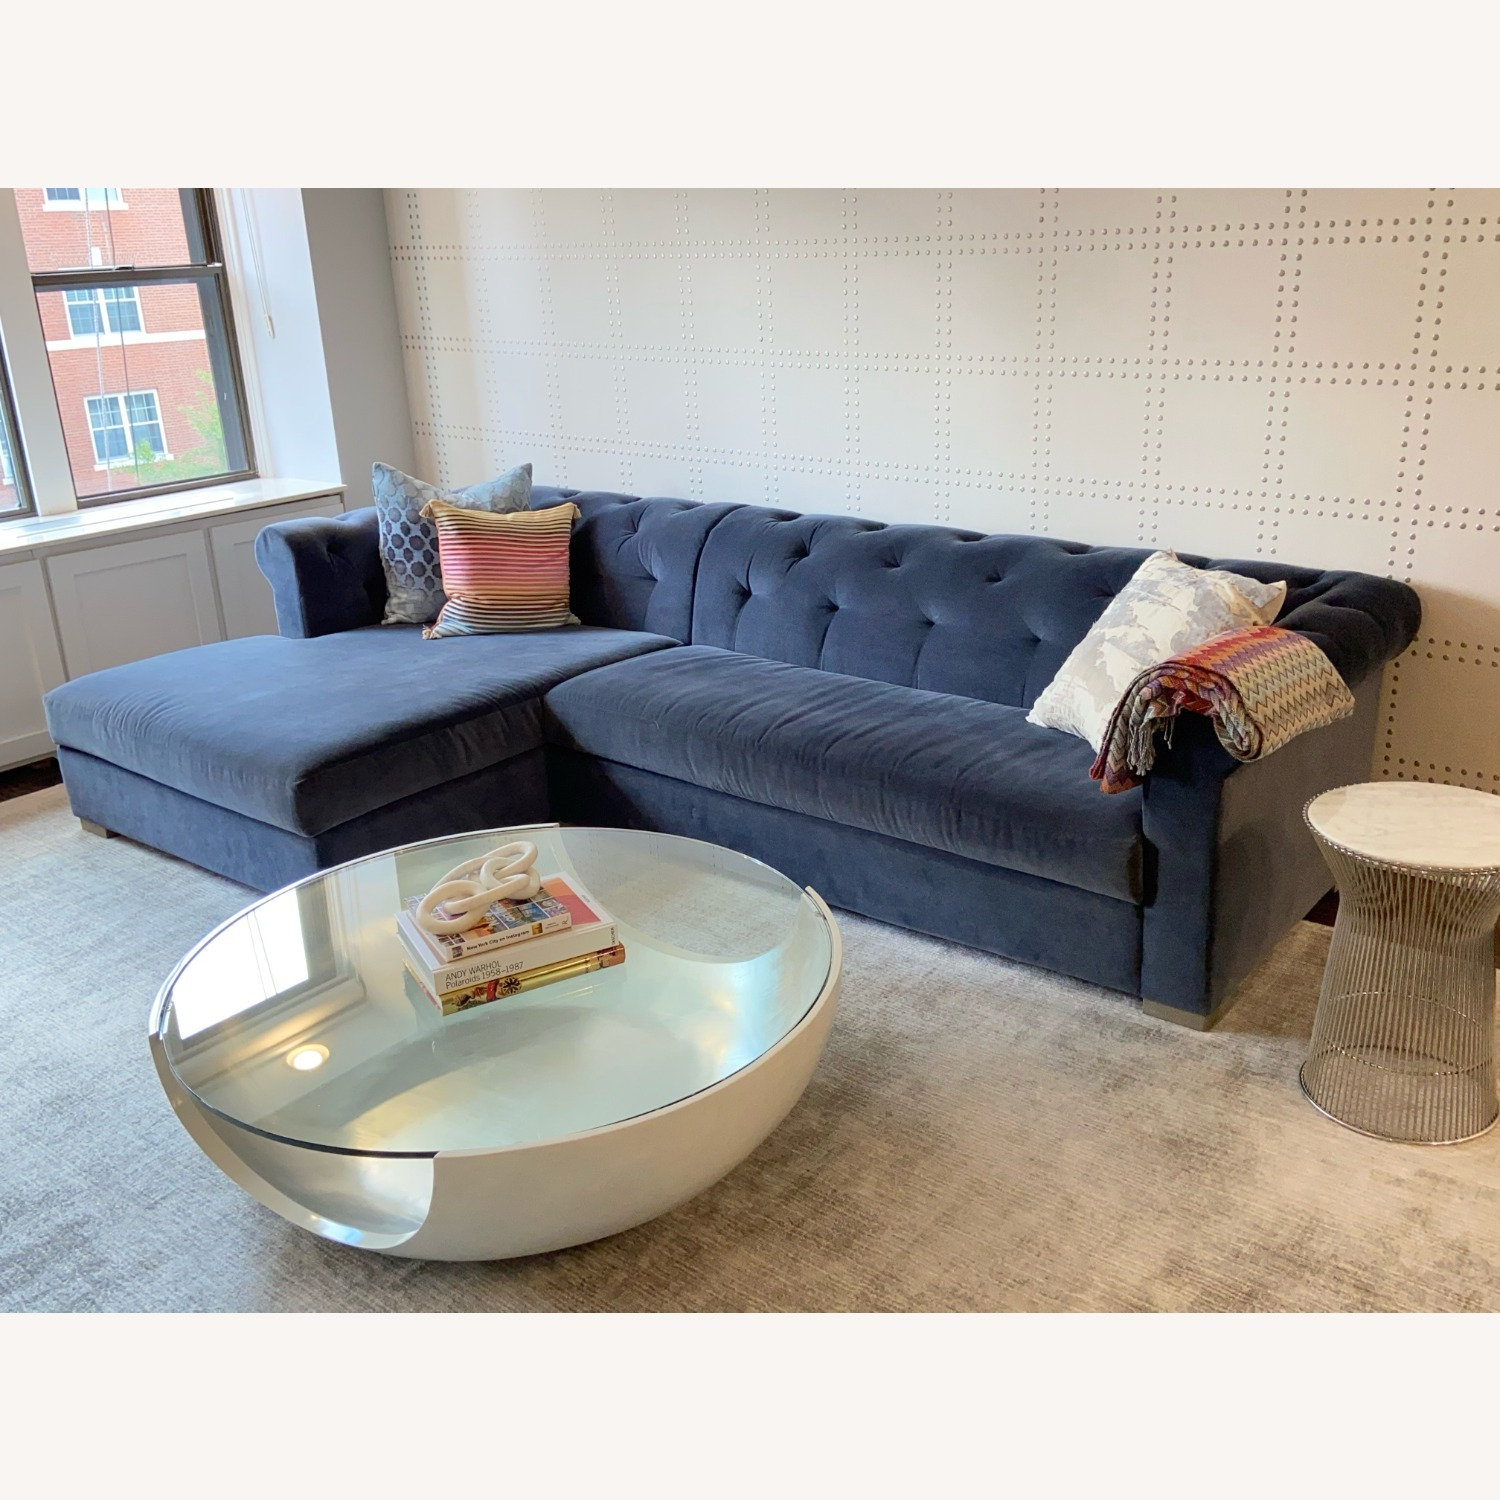 Restoration Hardware Sectional Couch - image-2